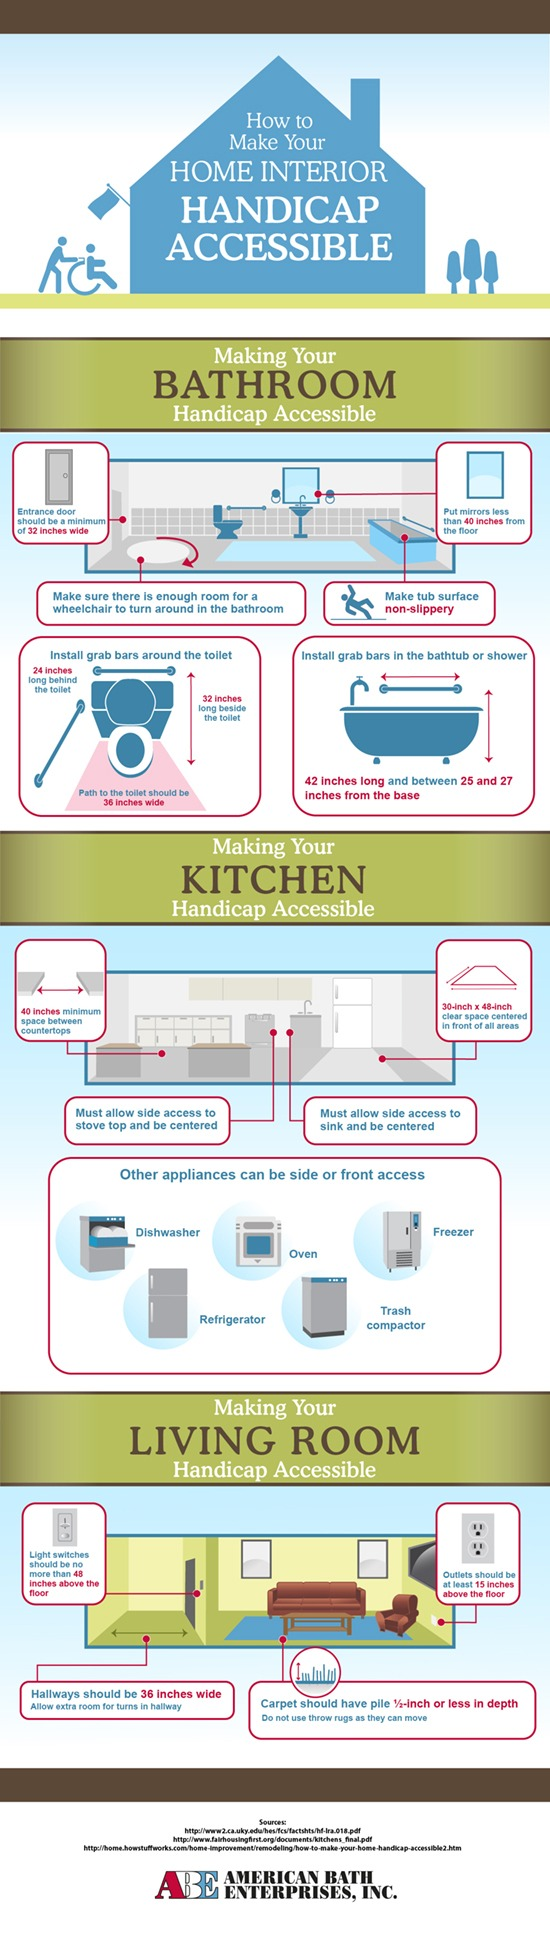 How to make your home interior handicap accessible infographic